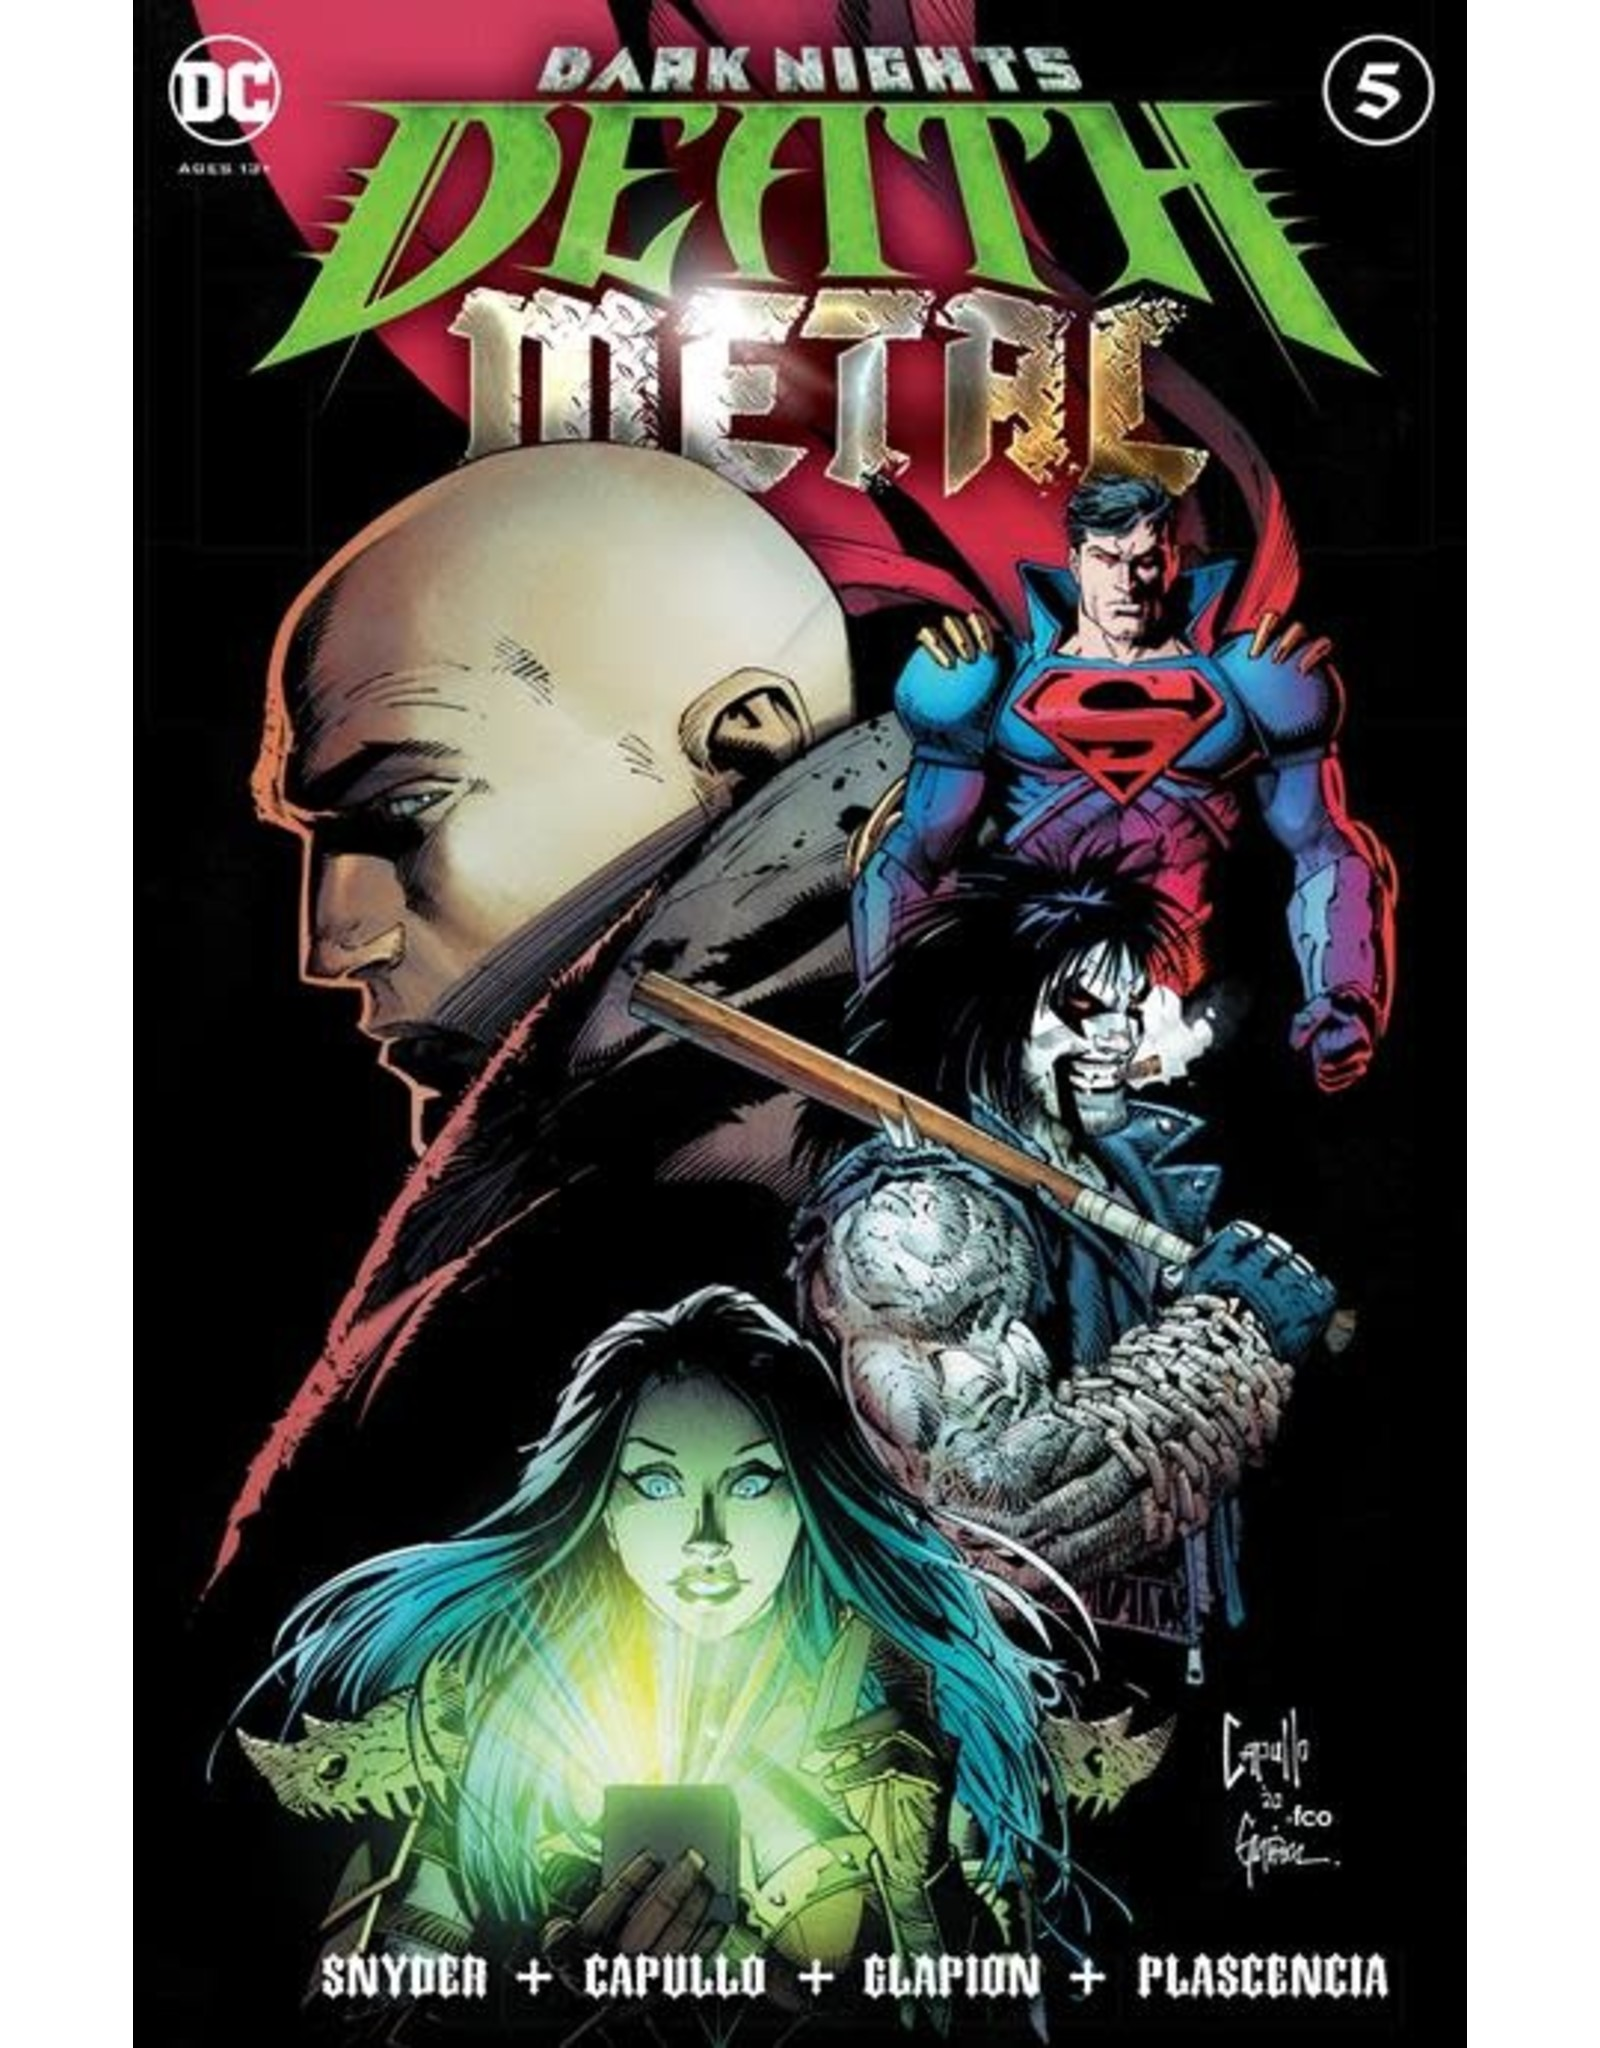 DC Comics DARK NIGHTS DEATH METAL #5 (OF 7) CVR A GREG CAPULLO EMBOSSED FOIL